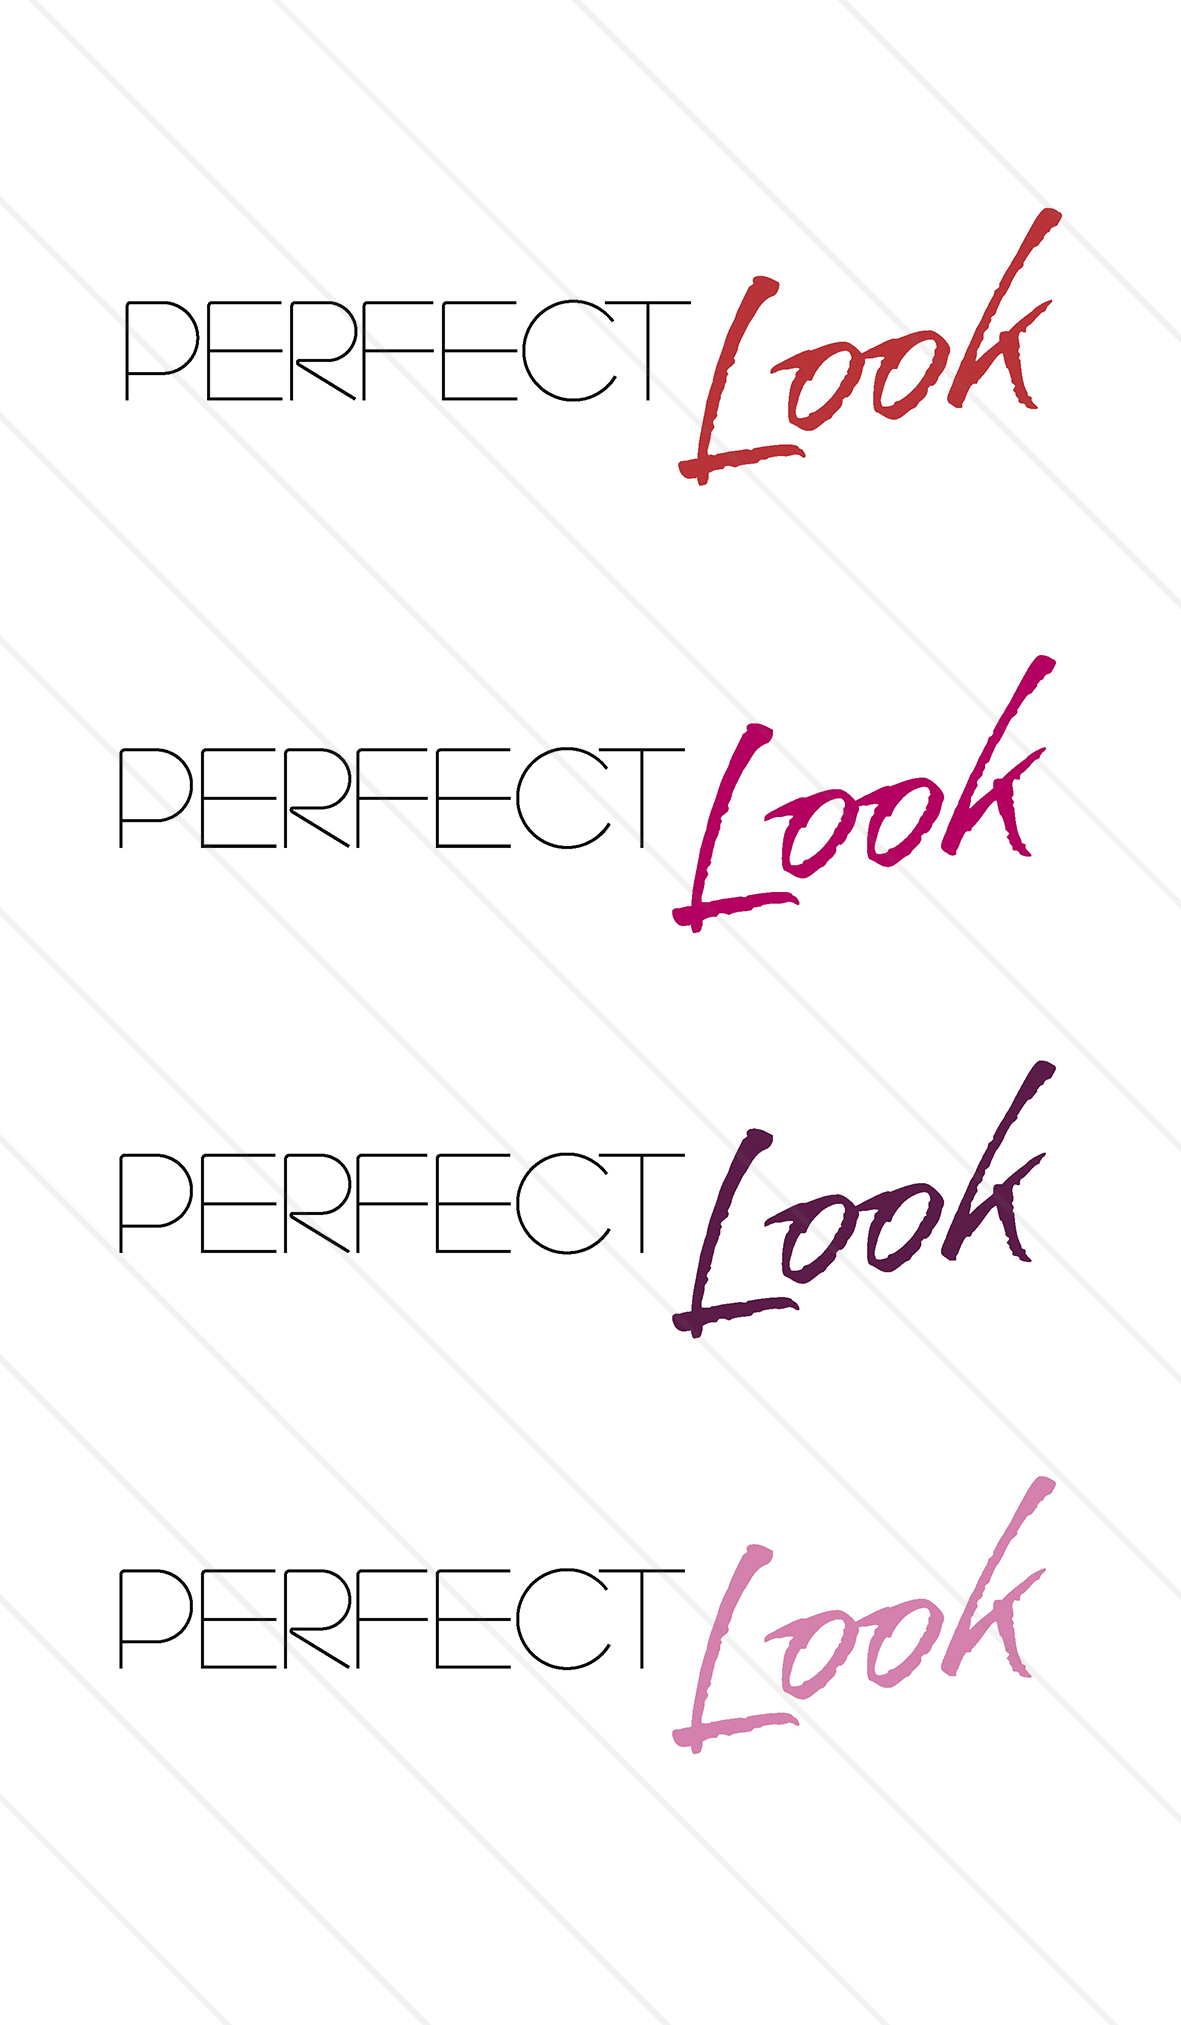 Perfect+LooK+logo+EPS-01.jpg